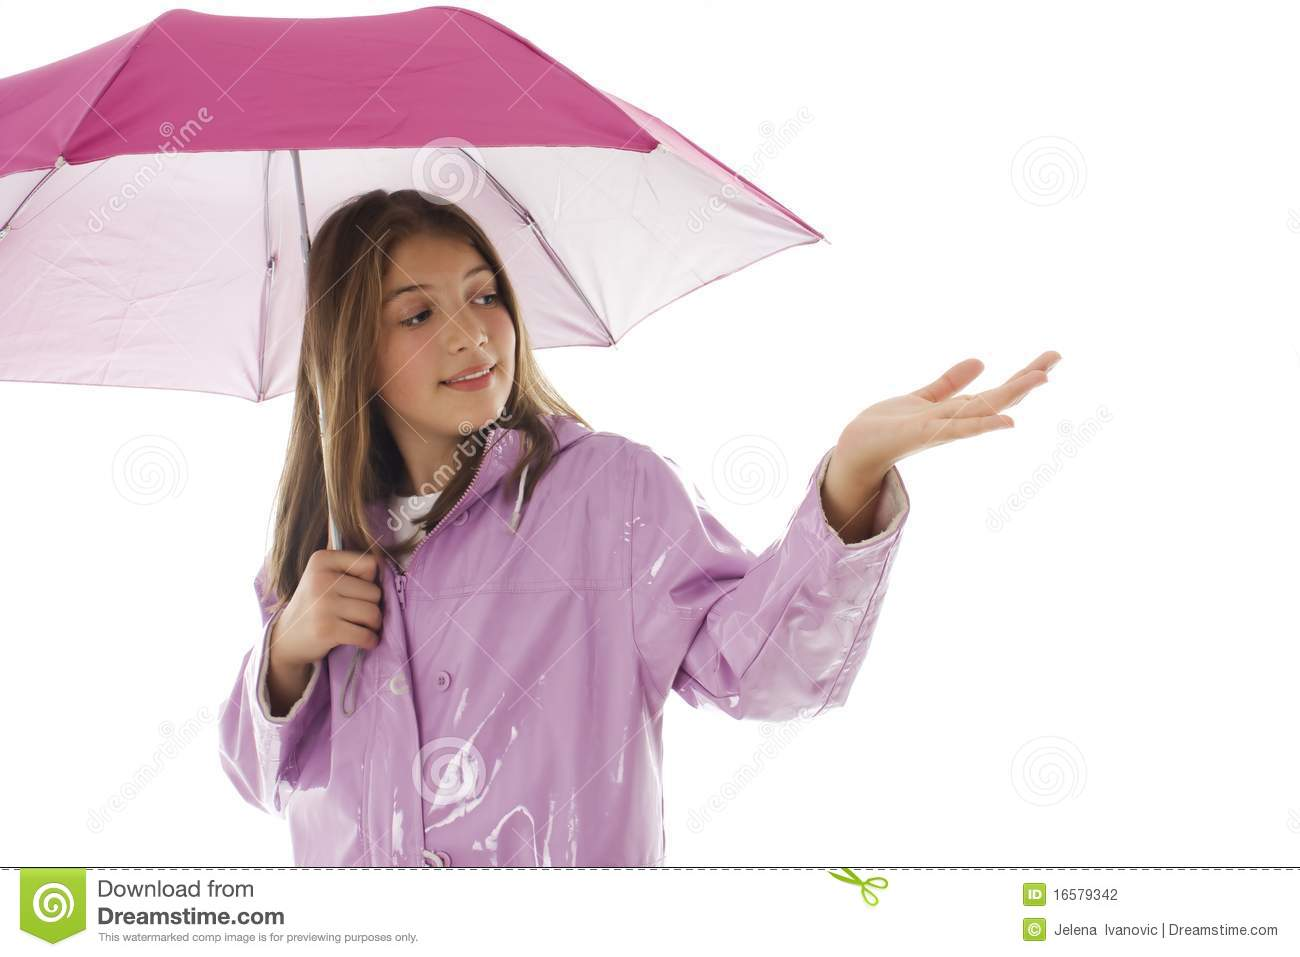 What young girls raincoats